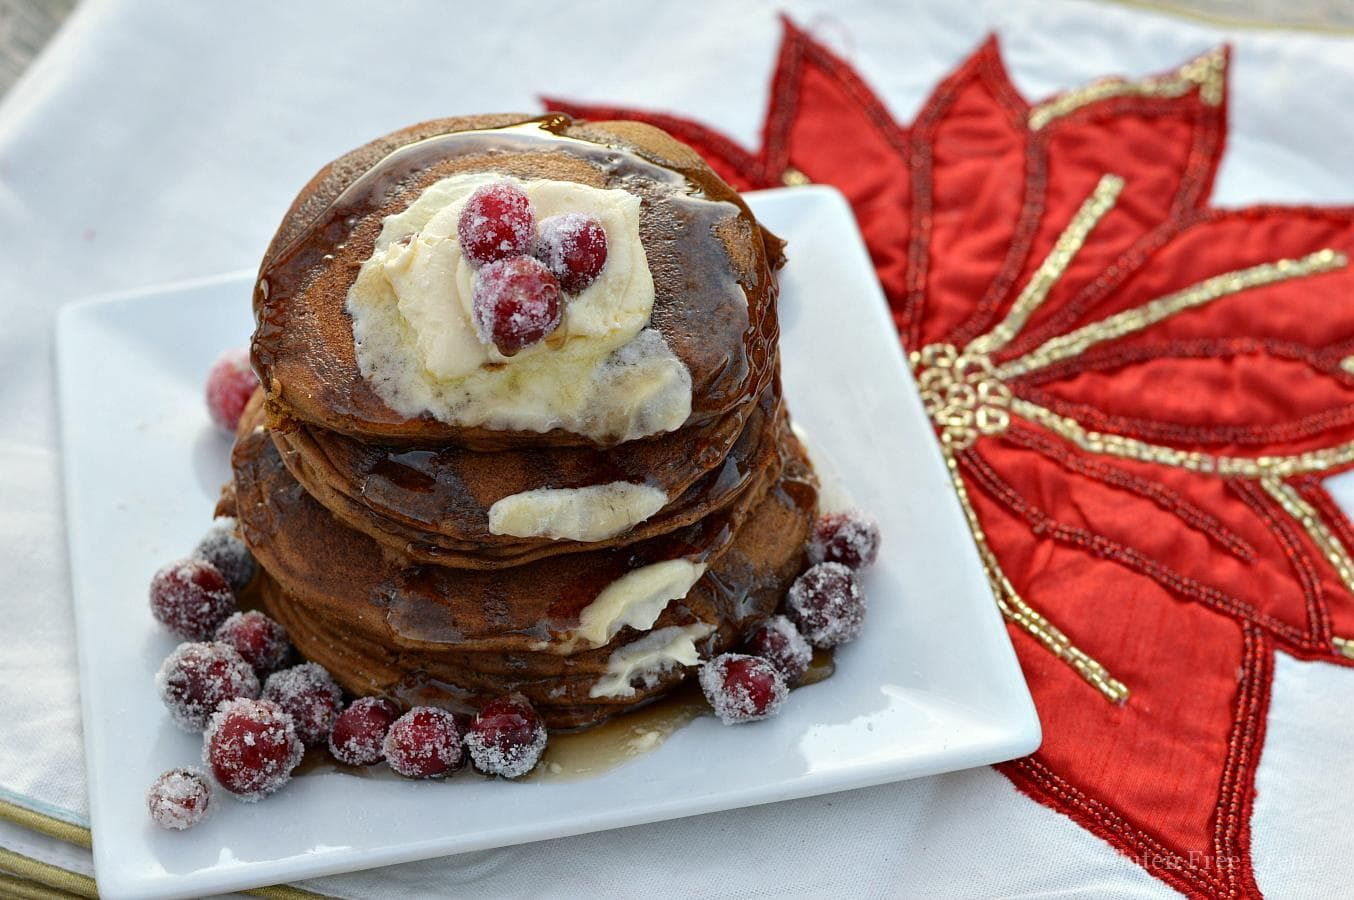 Oh holly jolly, these gluten-free gingerbread pancakes are full of holiday flavors and spices. They are so delicious nobody would ever know they are gluten-free. Serve them with sugared cranberries on top.